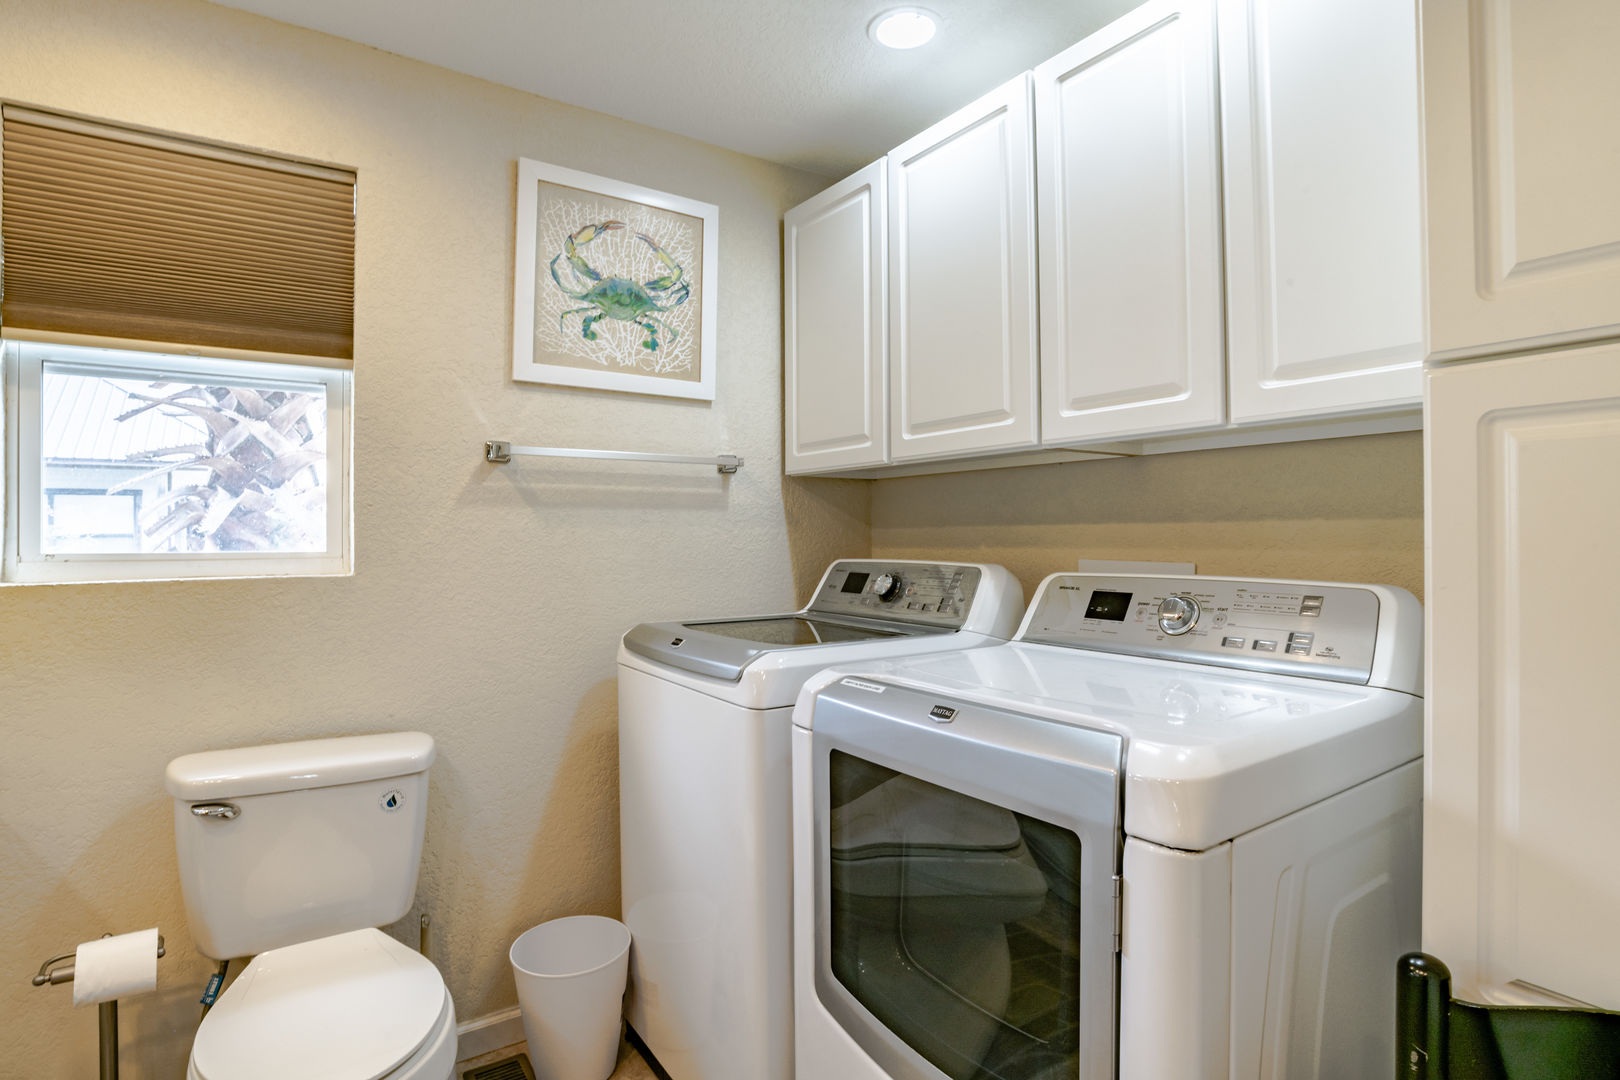 Full sized washer and dryer in Laundry Room